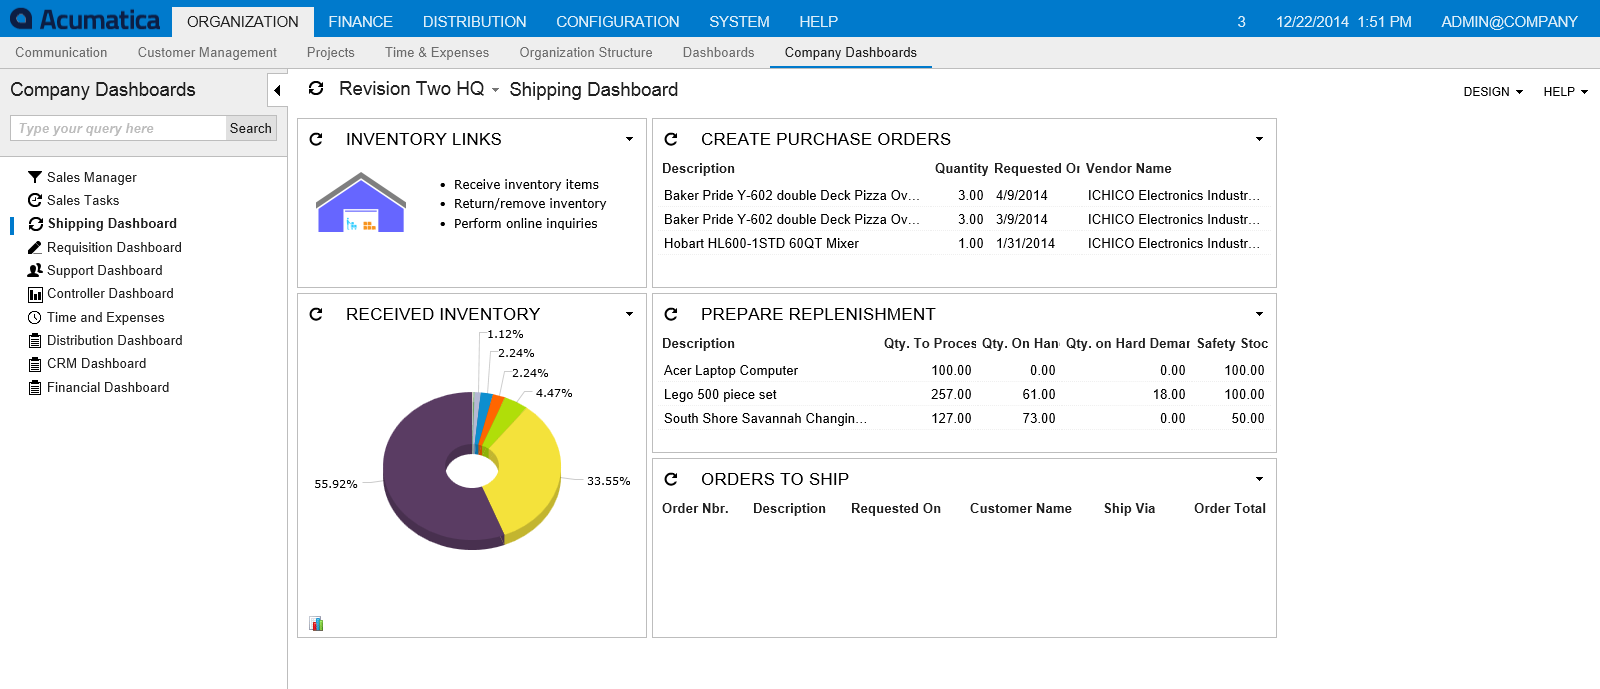 Acumatica Inventory Management presented by RAD Apps USA